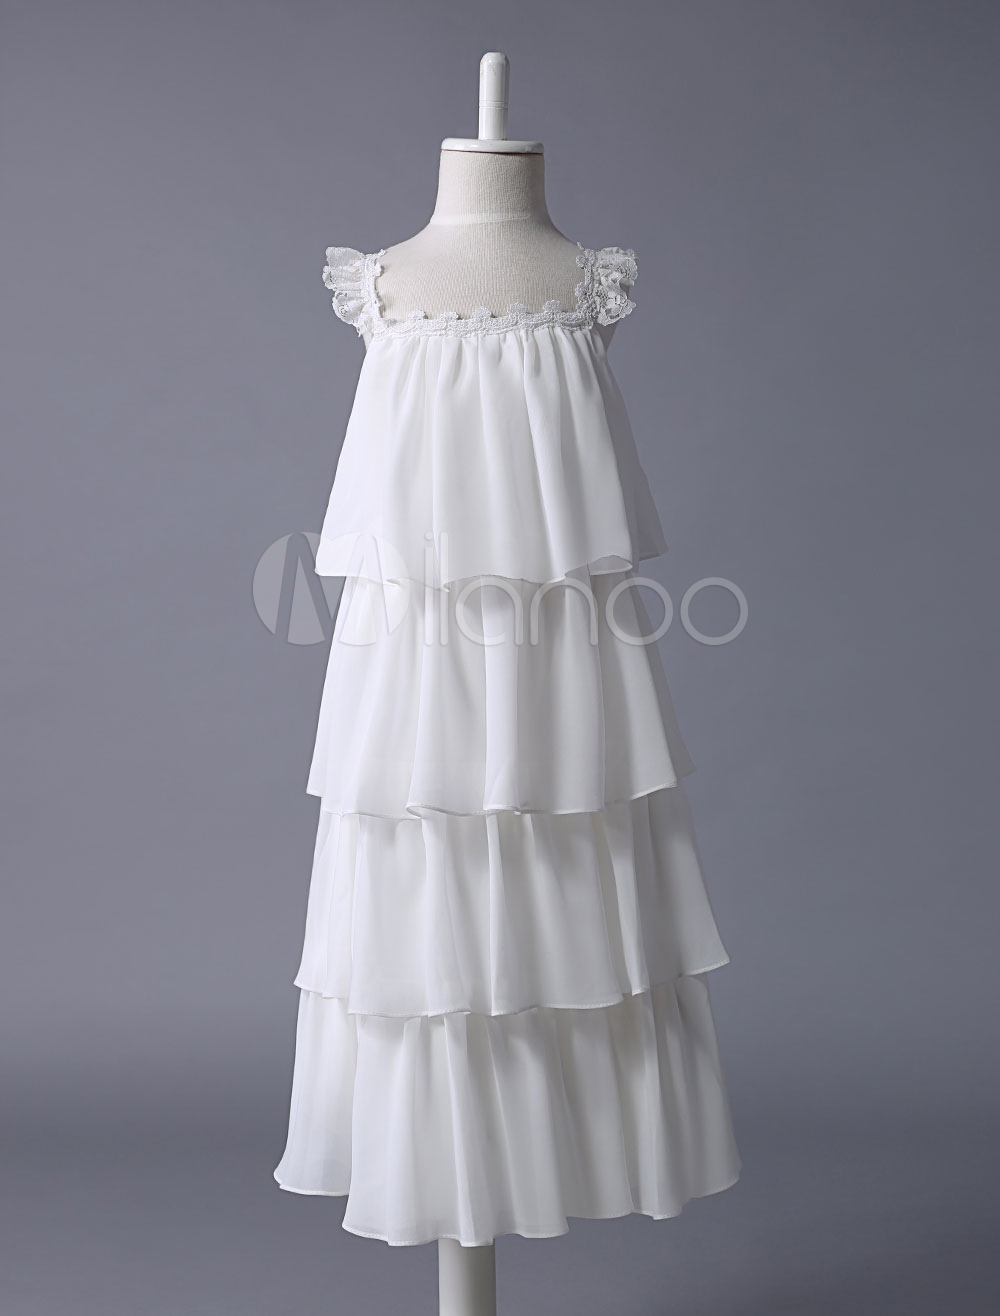 Buy Flower Girl Dress Boho Tiered Ivory Tiered Lace Chiffon Wedding Kids Party Dress for $66.59 in Milanoo store